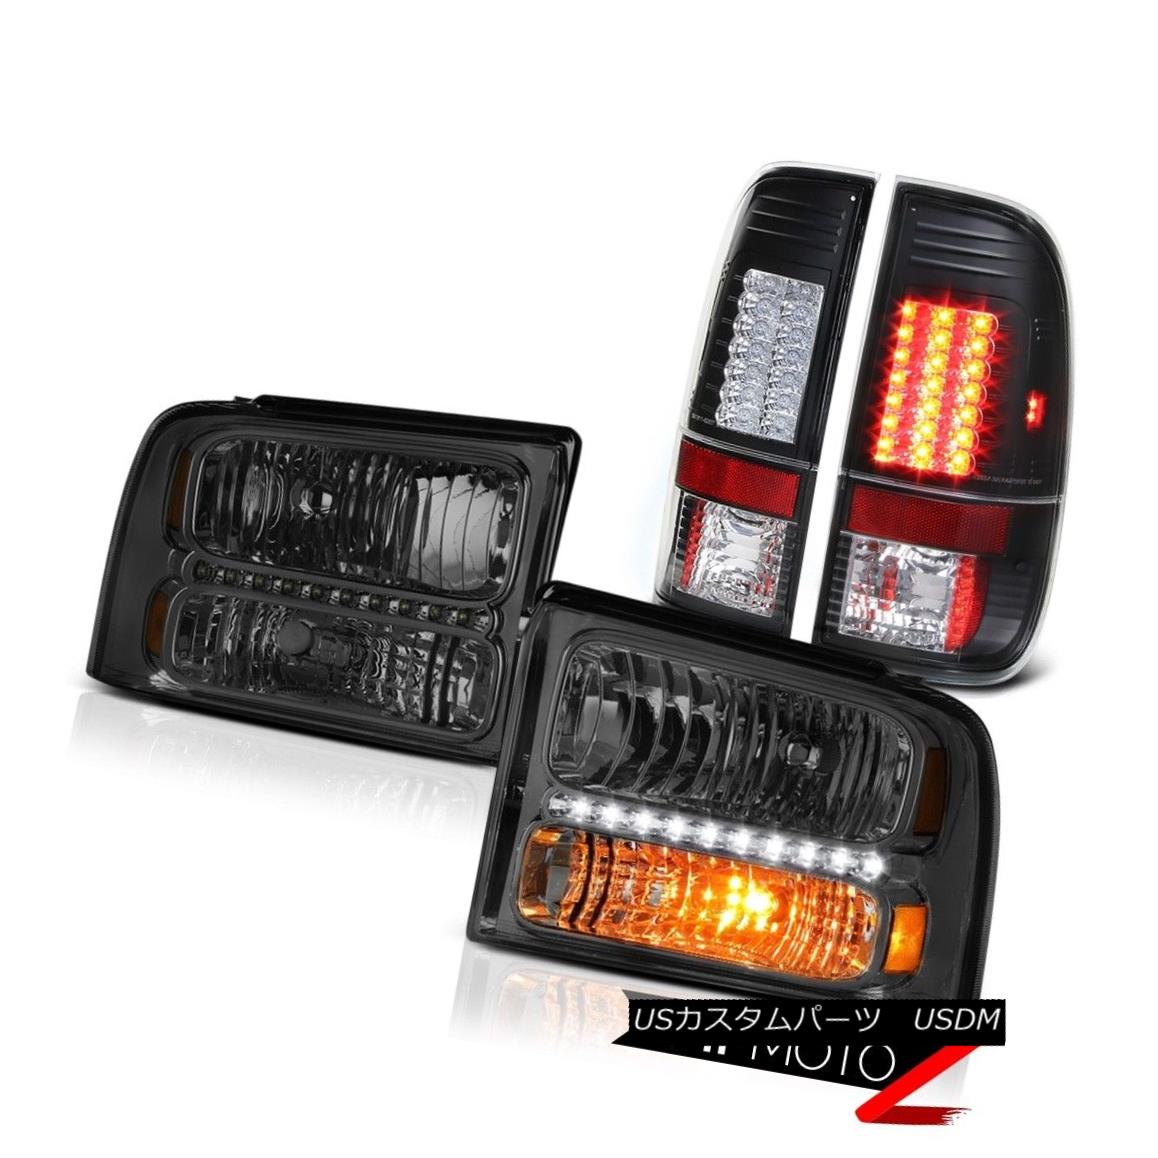 テールライト Dark Front Headlights LED Bulbs Tail Lamps 2005 2006 2007 Ford F250 King Ranch ダークフロントヘッドライトLED電球テールランプ2005 2006 2007 Ford F250 King Ranch